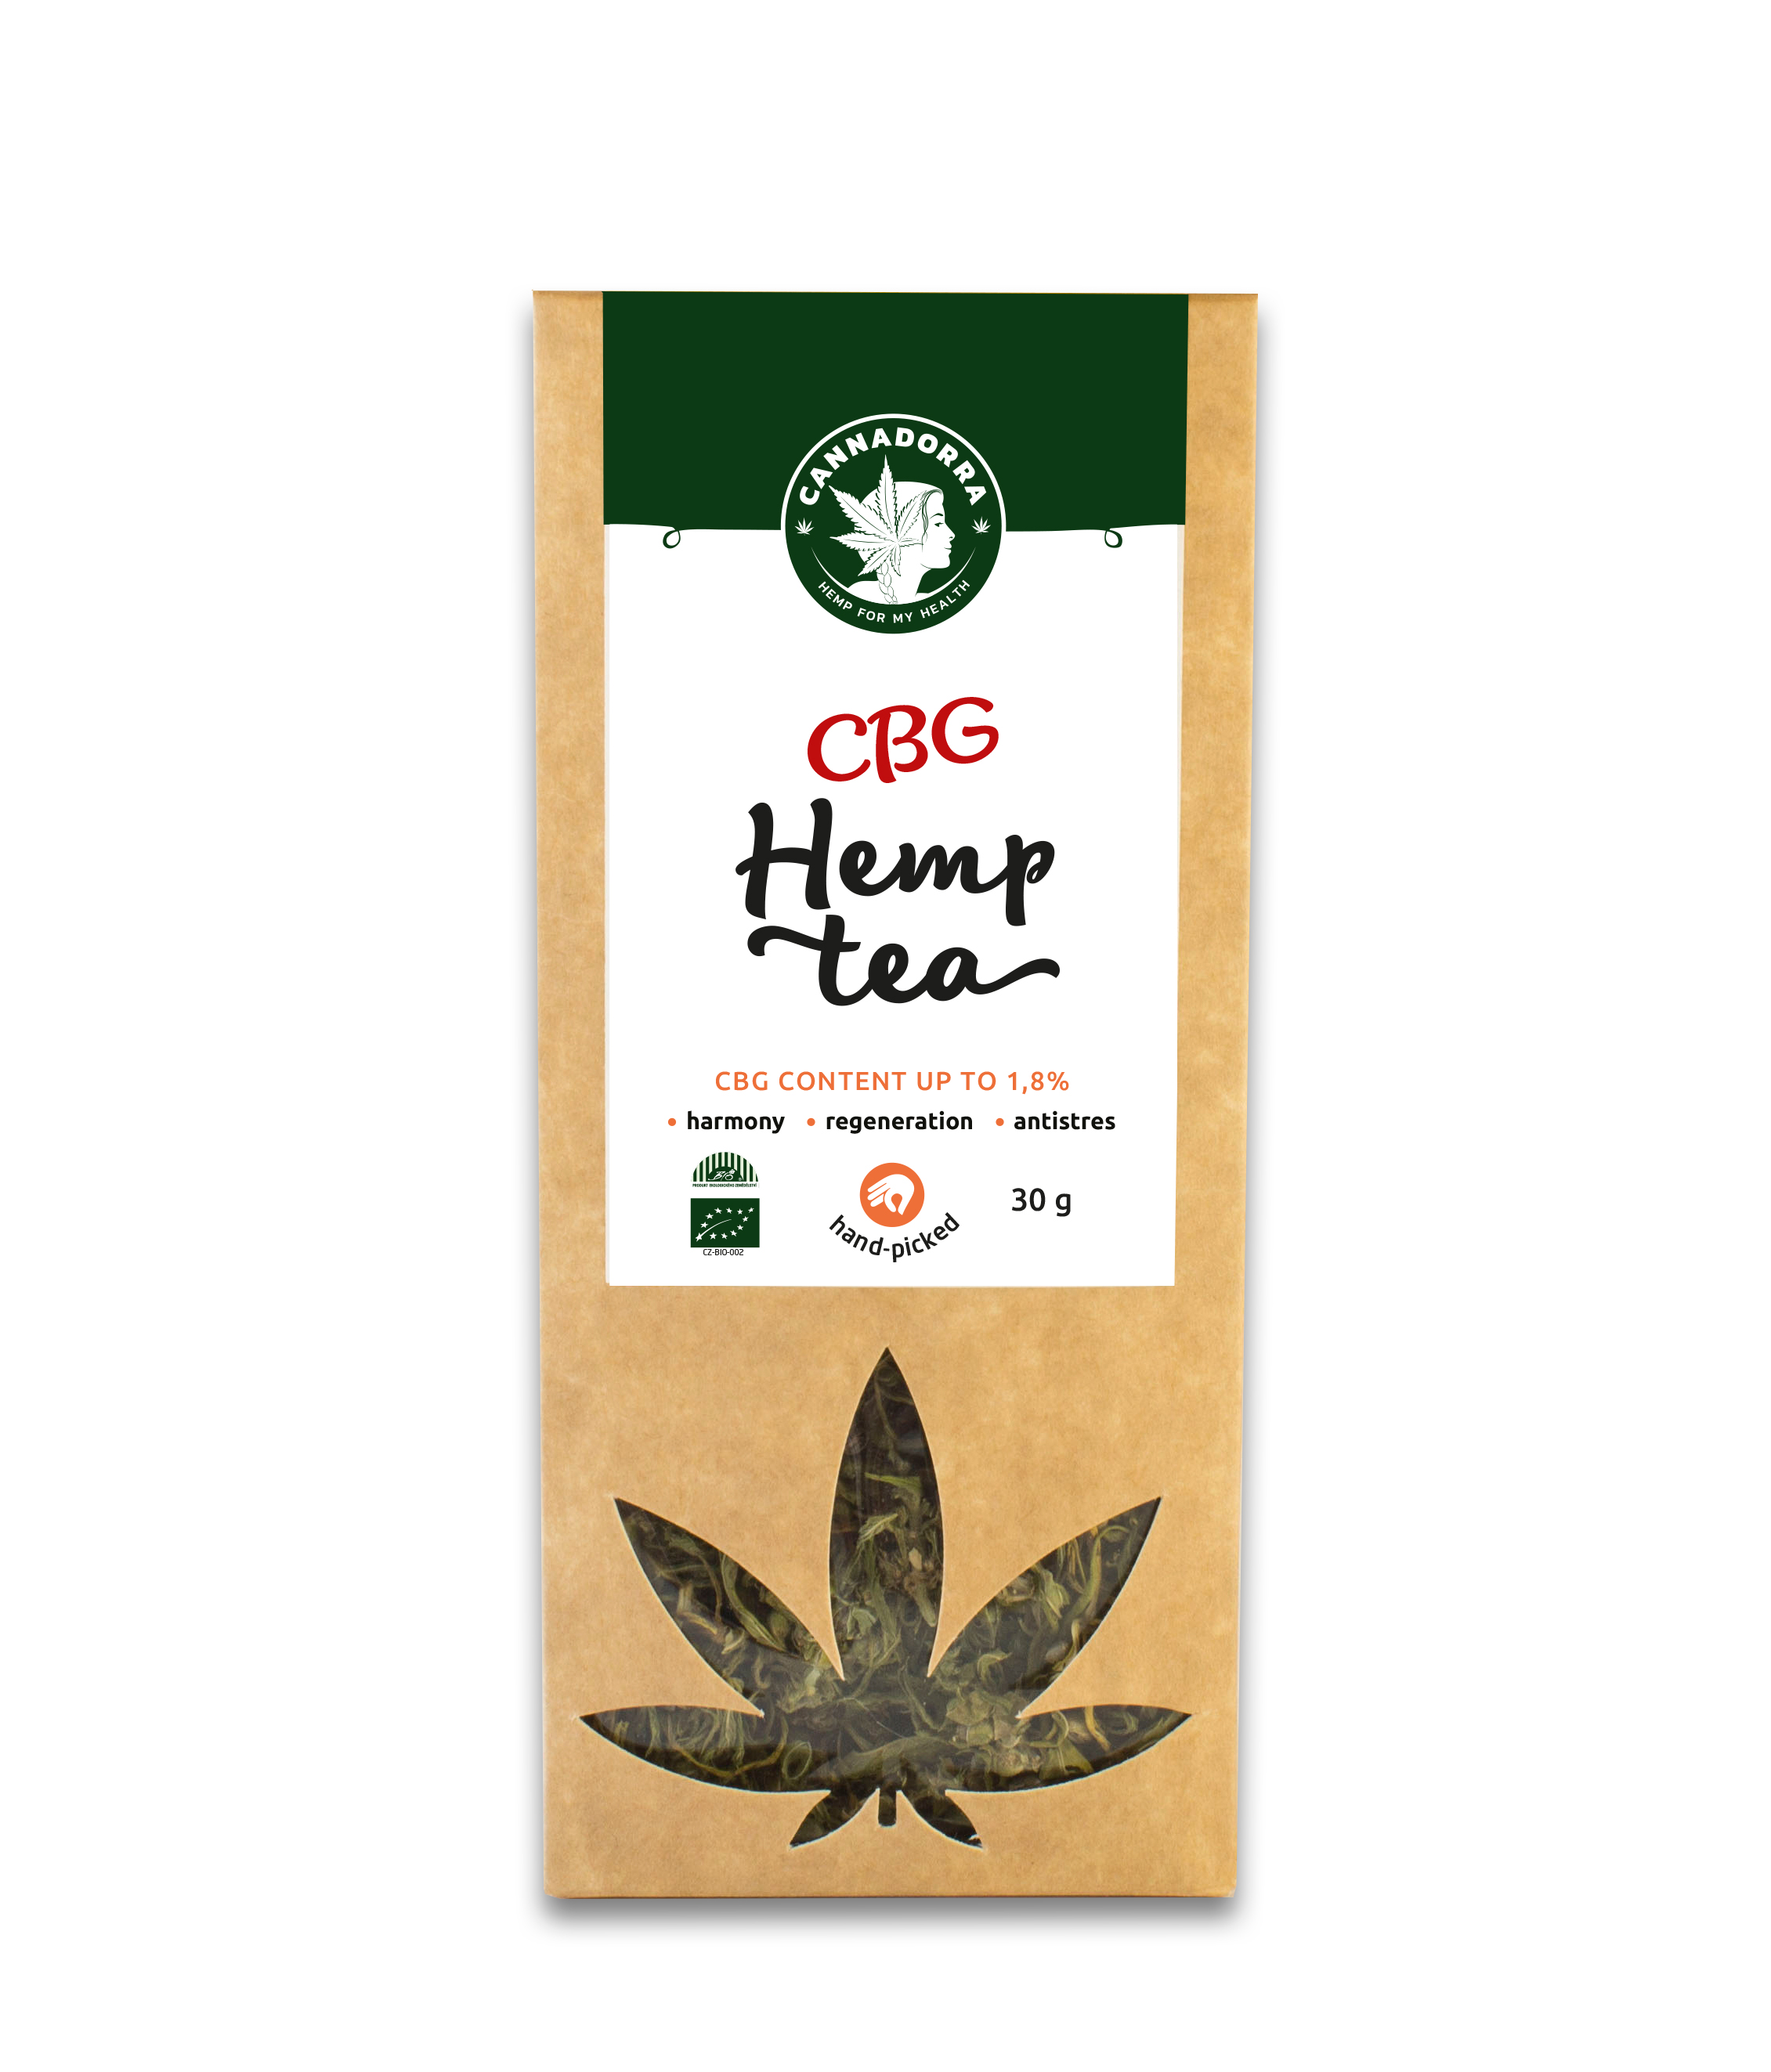 CBG hemp tea 1,8%, 30g | E-Shop - Cannadorra